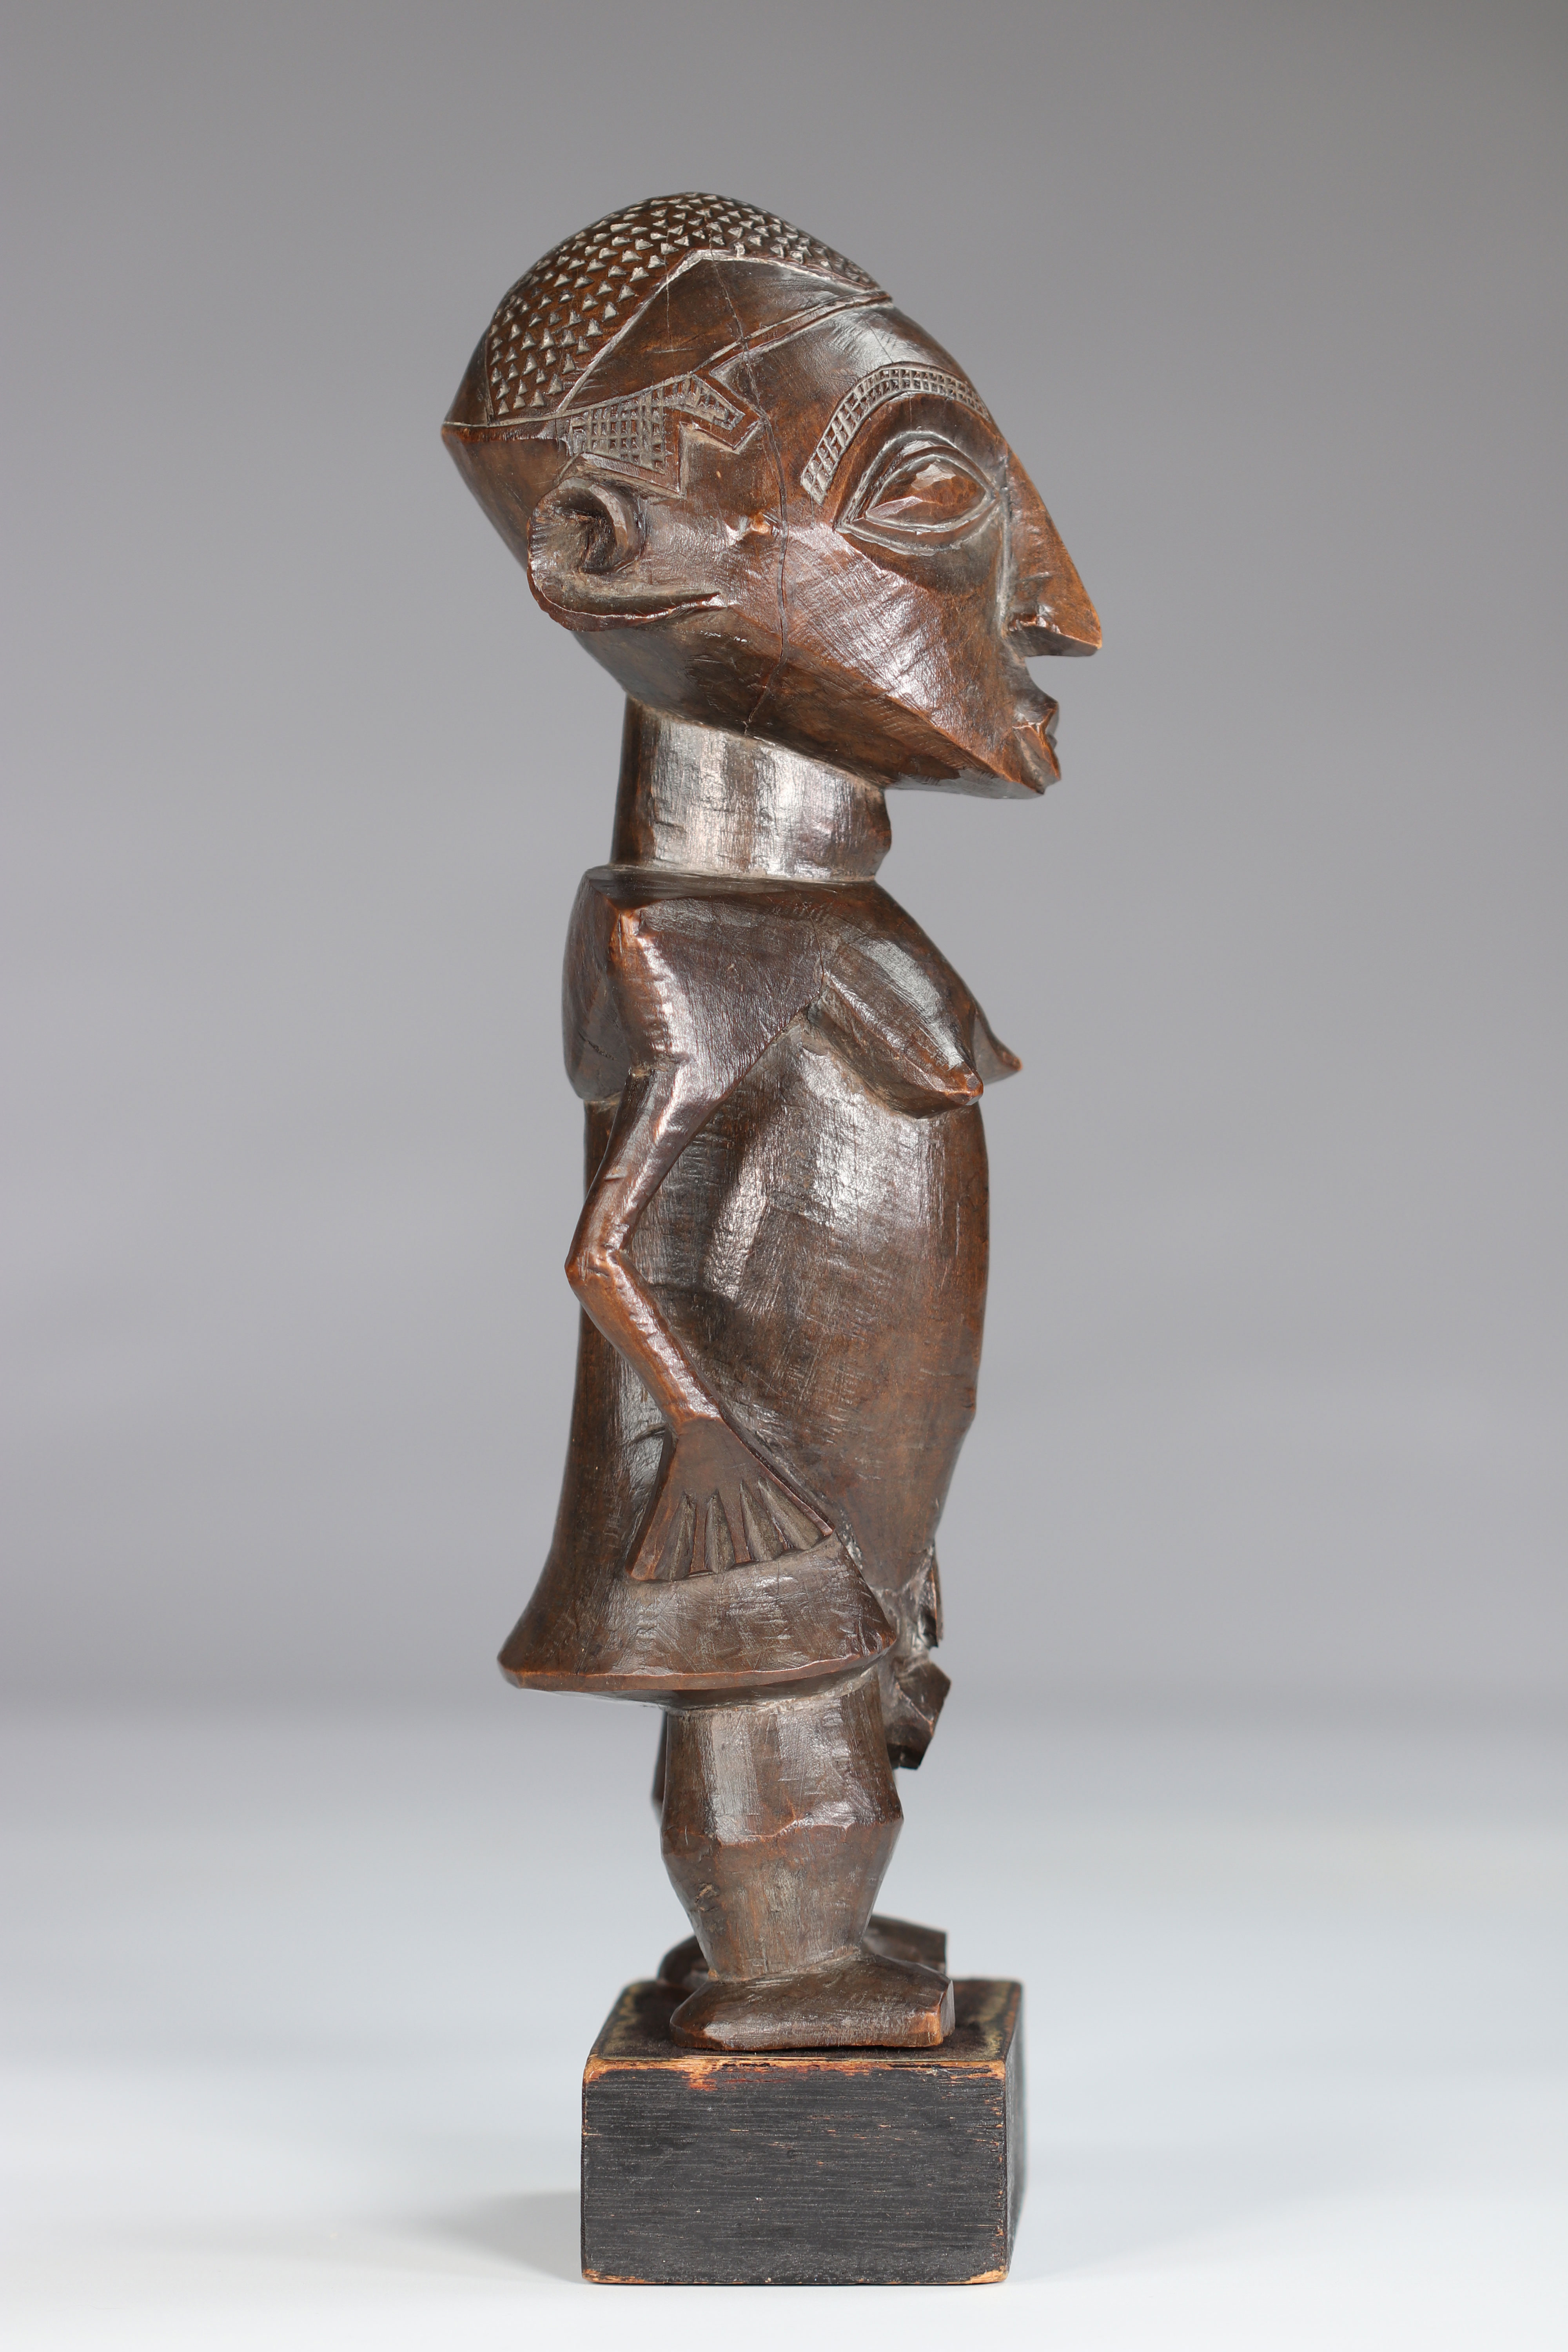 Rare Statue Wongo ca 1930 prov :, B. De Bruyn Netherlands. This high quality sculpture is distinguis - Image 3 of 5